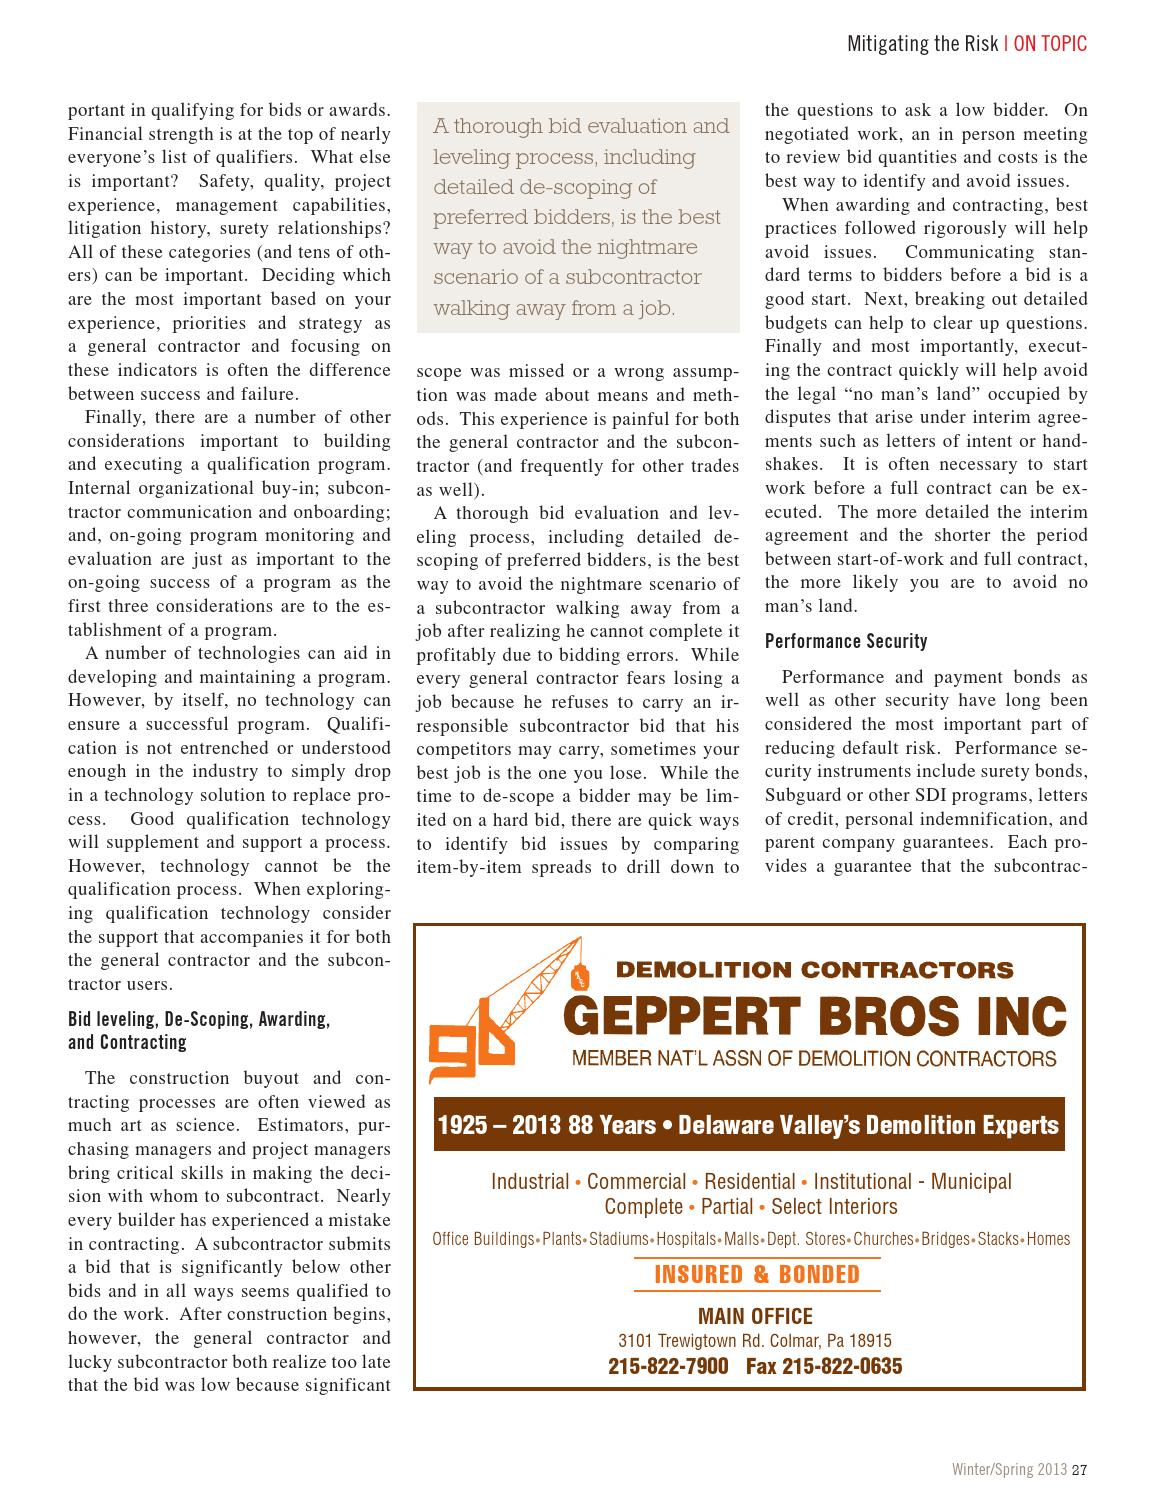 Construction Today Winter Spring 2013 By General Building Contractors Association Issuu